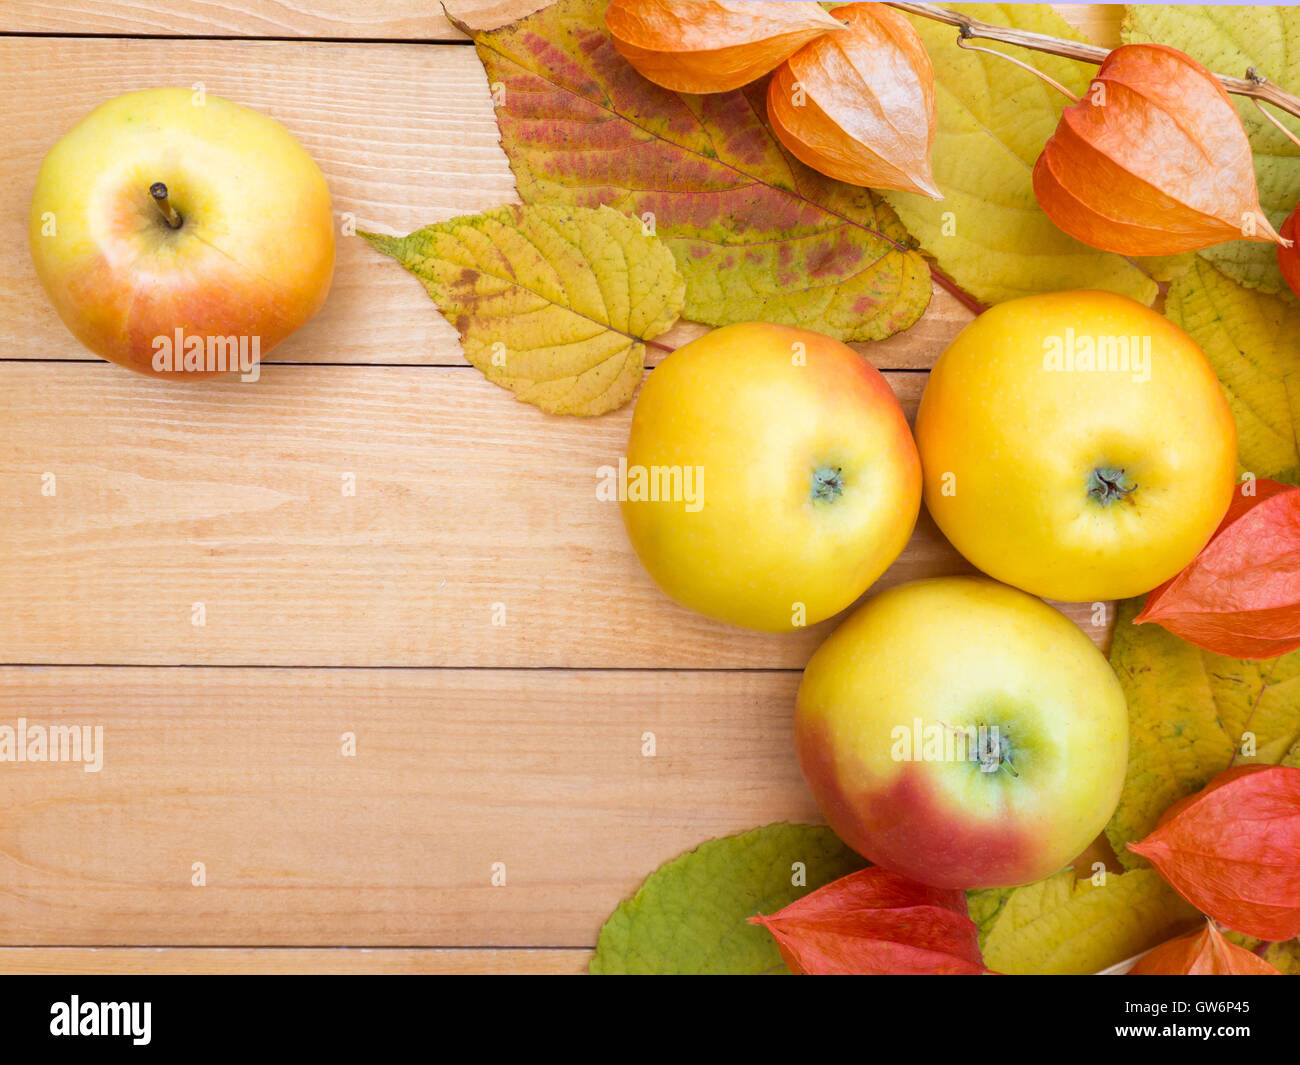 Apples, physalis lanterns and autumn leaves on the wooden planks background - Stock Image